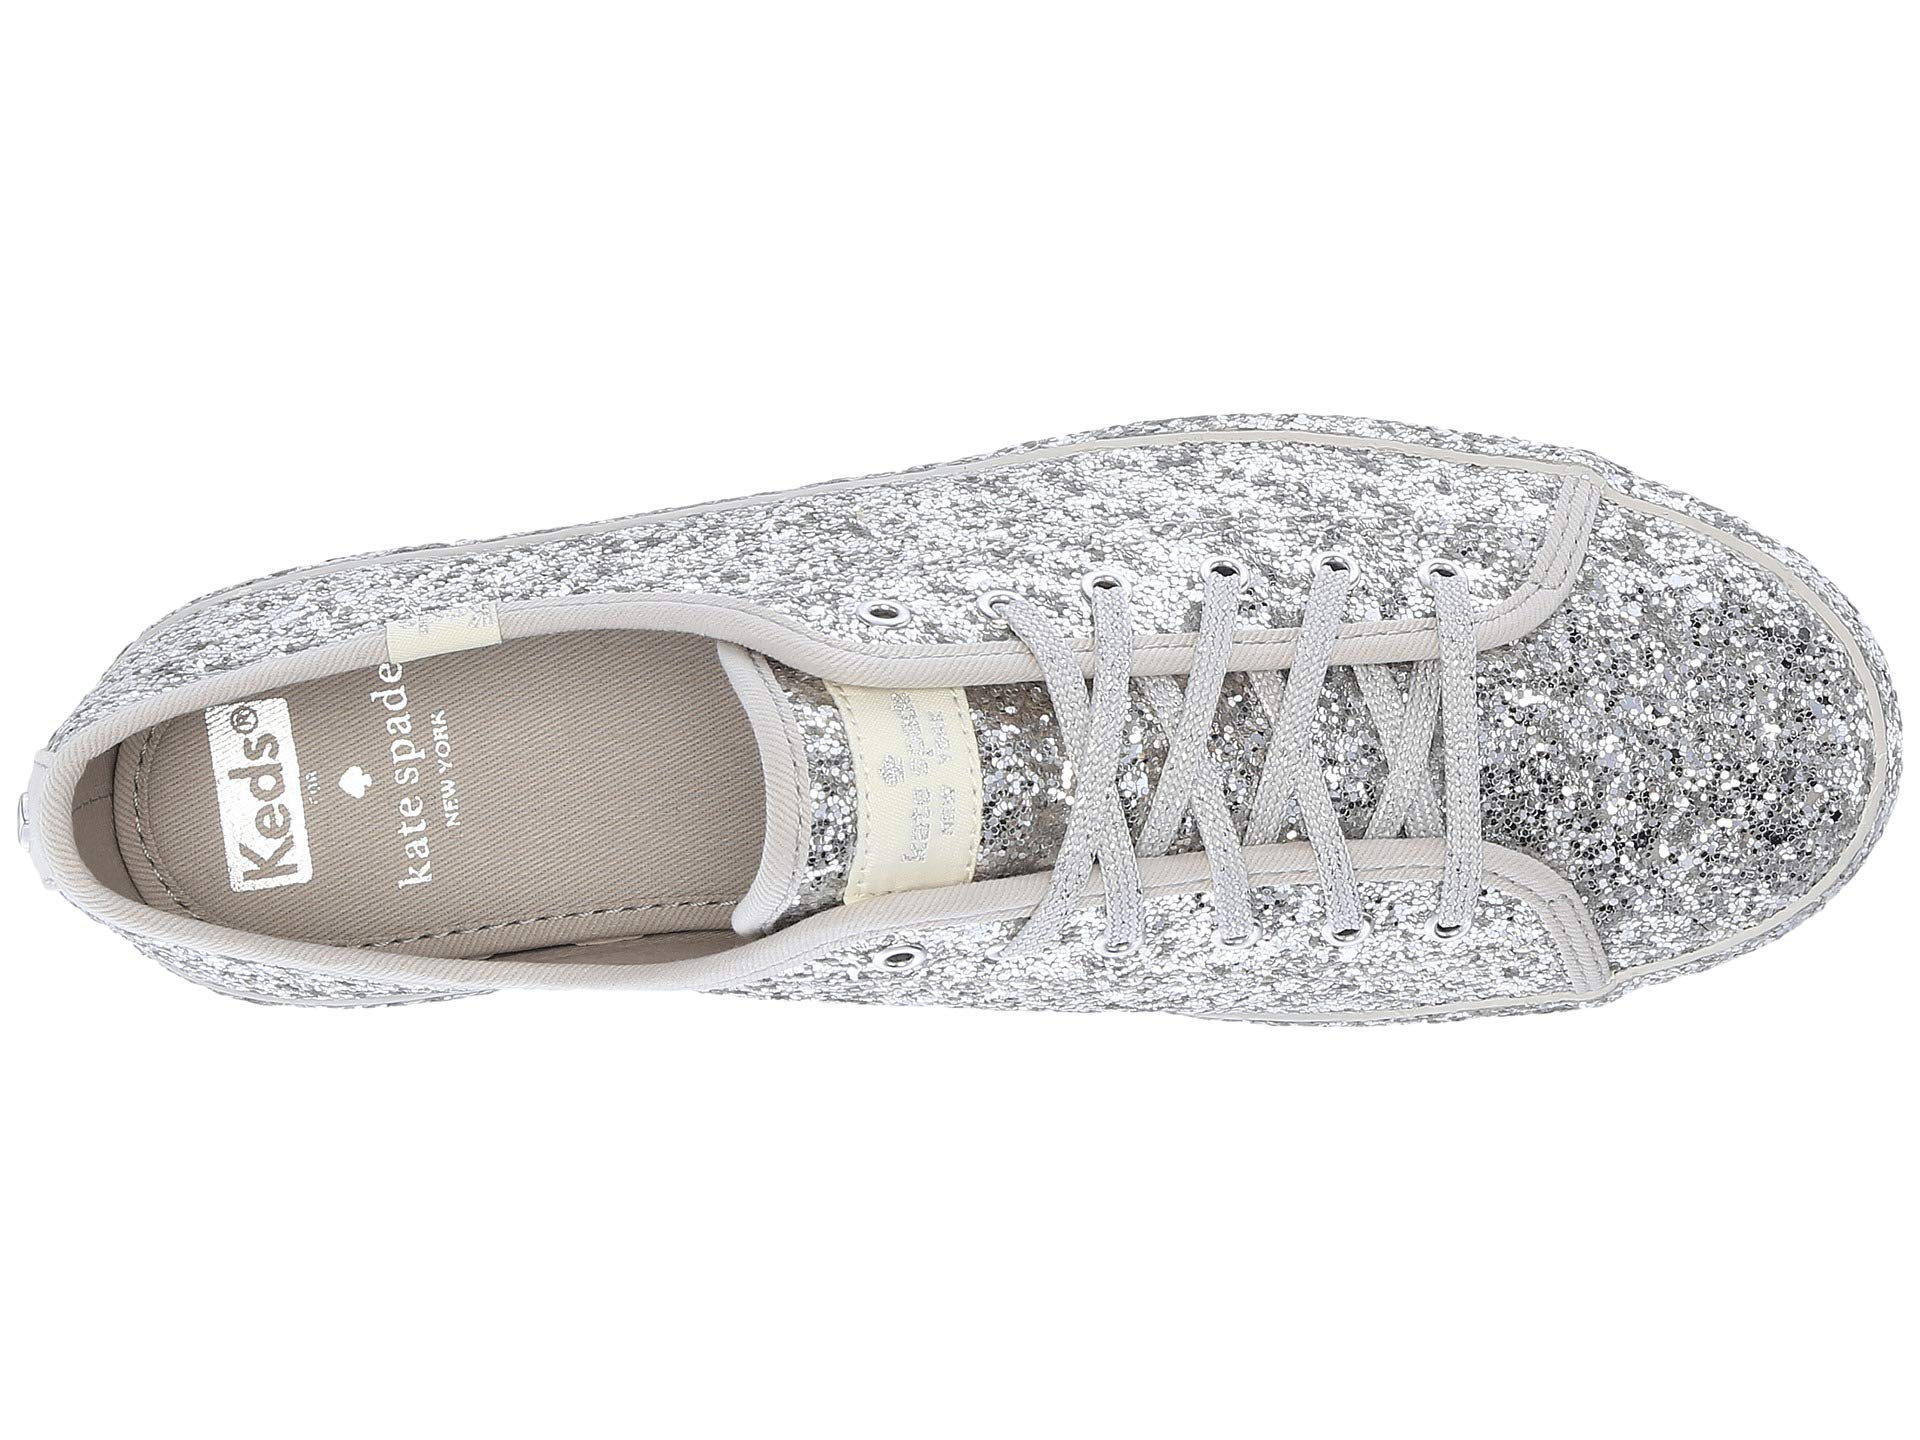 8a1d200860a2 Keds x kate spade new york Kickstart KS All Over Glitter at  Luxury.Zappos.com